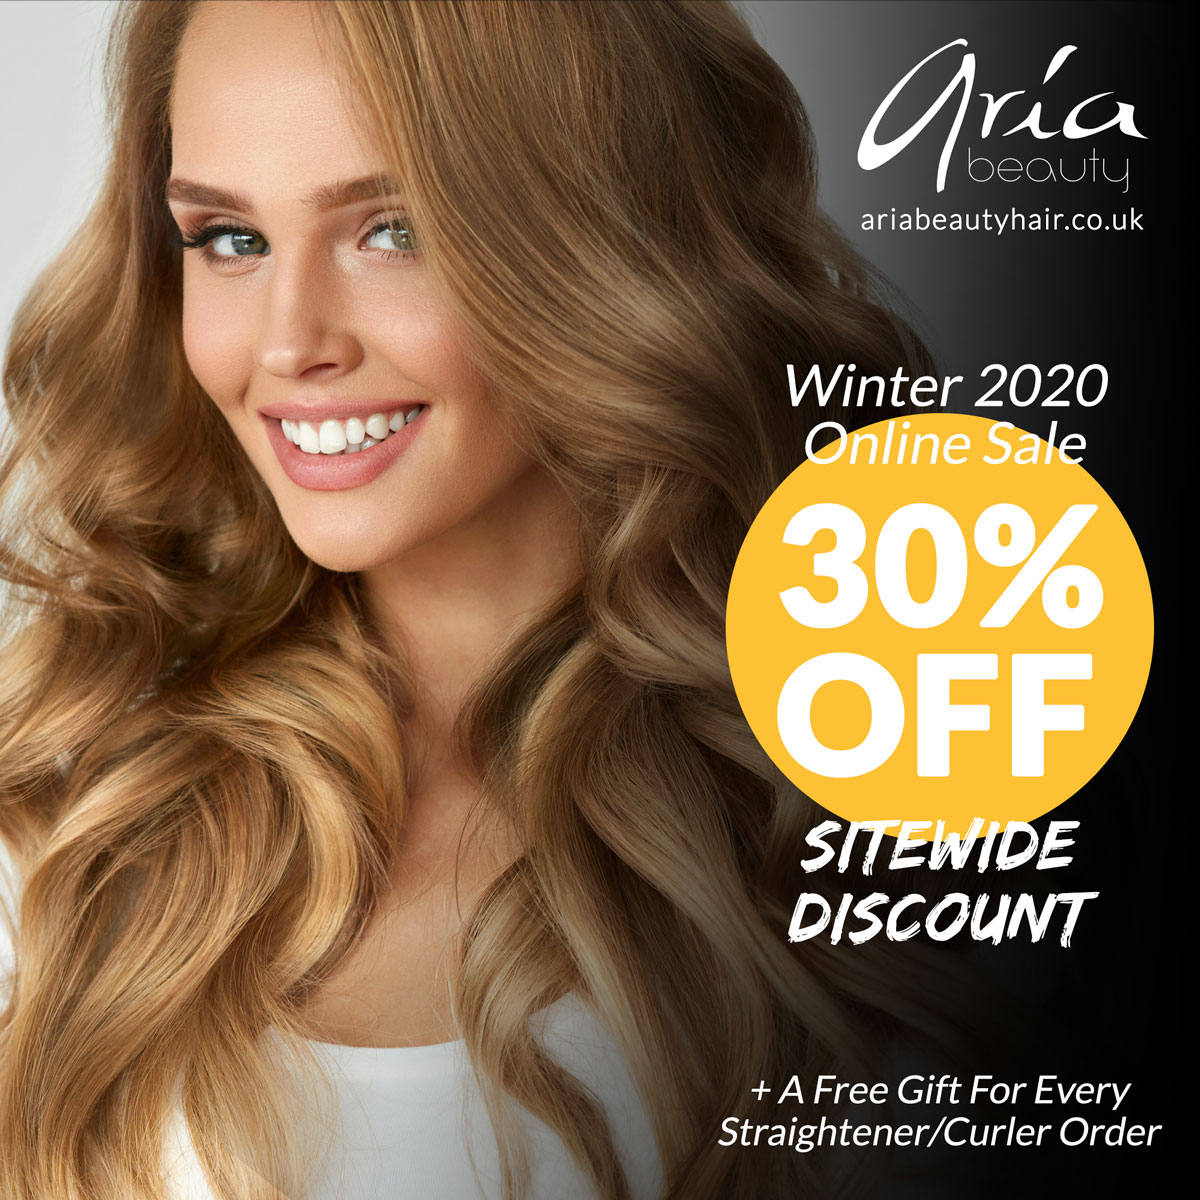 Winter 2020 Online Sale on Aria Beauty Europe